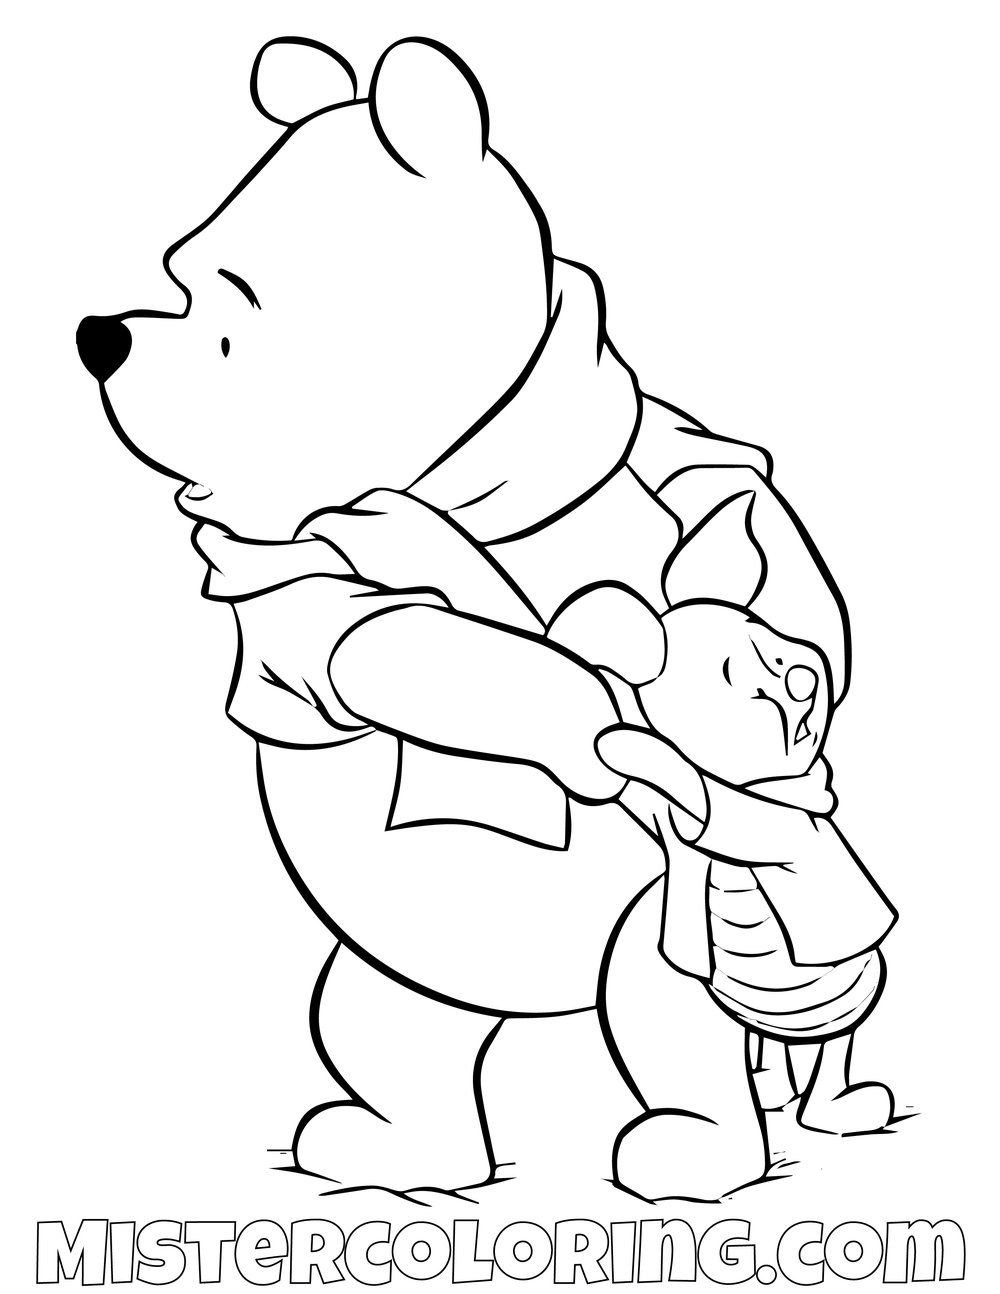 Winnie The Pooh And Piggy Cold Coloring Page Disney Coloring Pages Coloring Pages Cartoon Drawings